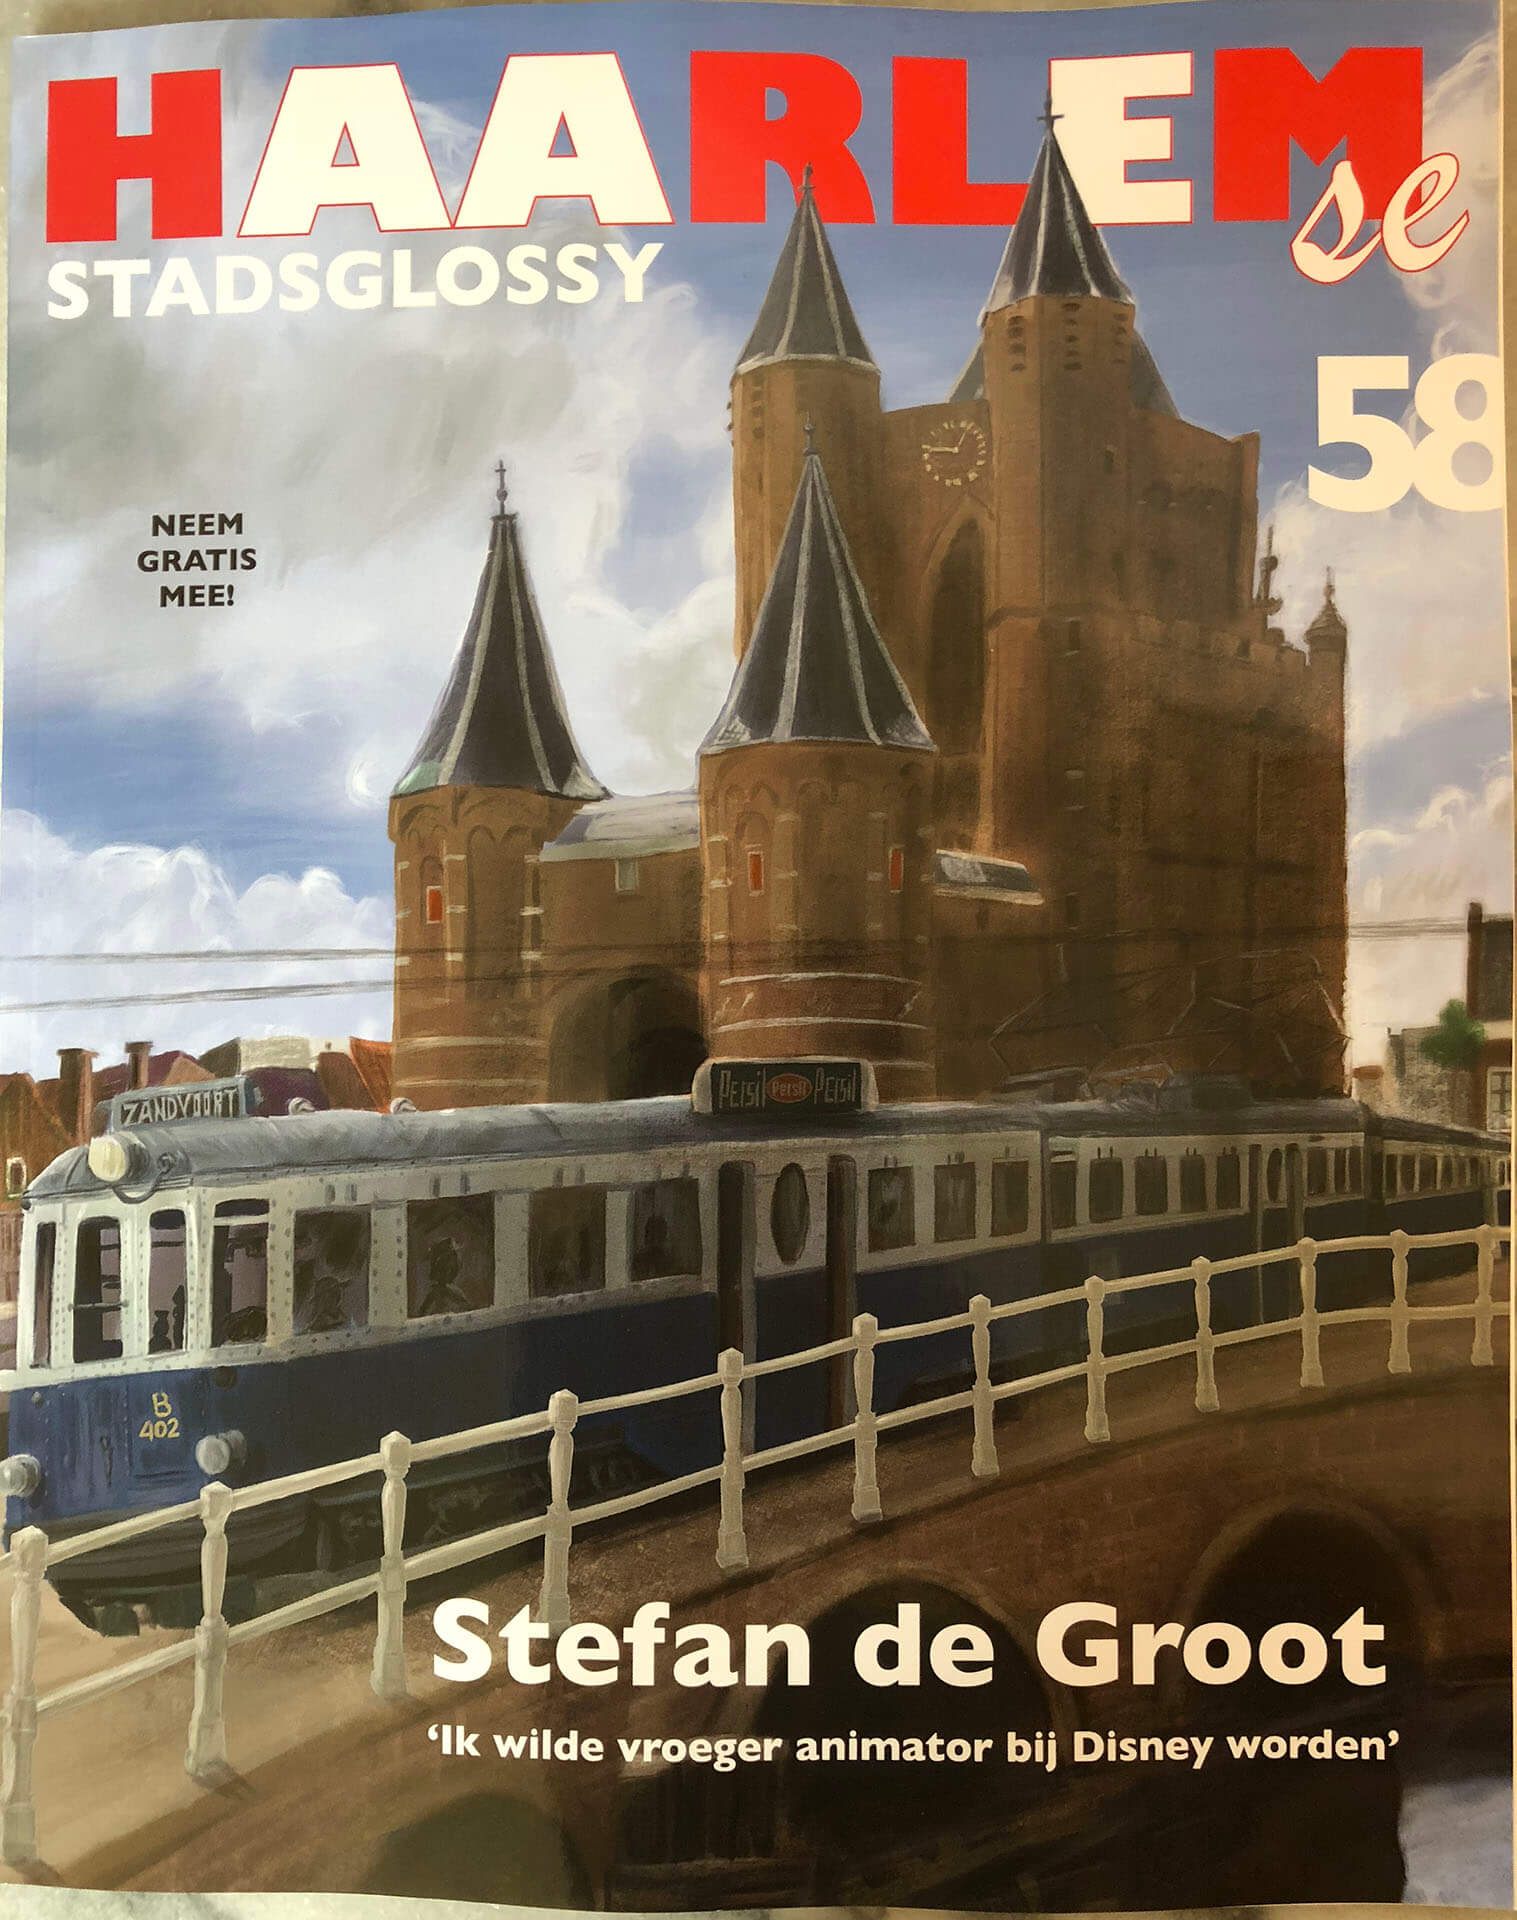 Haarlemse Stadsglossy 58 cover Stefan de Groot